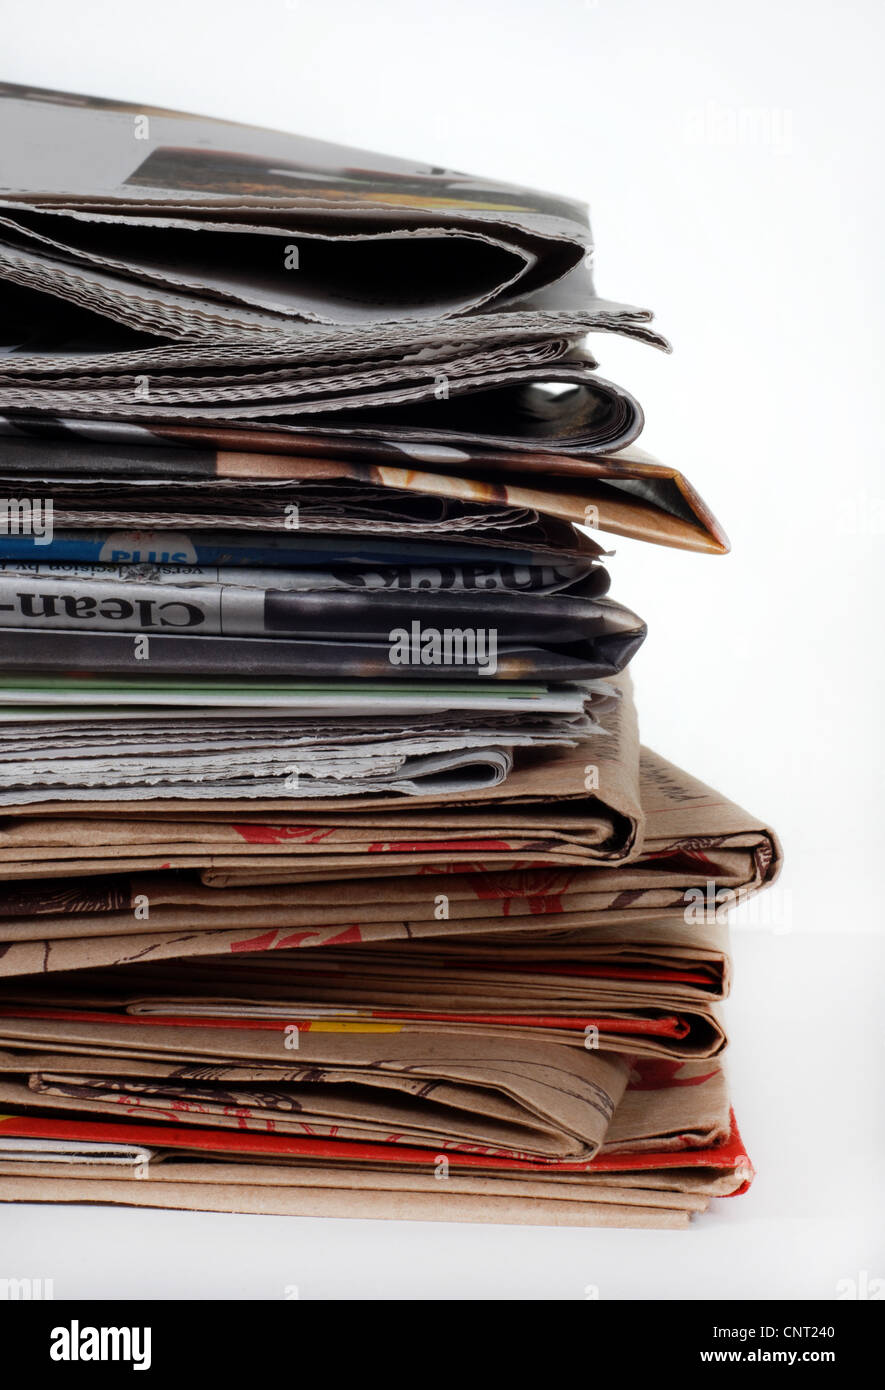 Stack of newspapers and bags - Stock Image